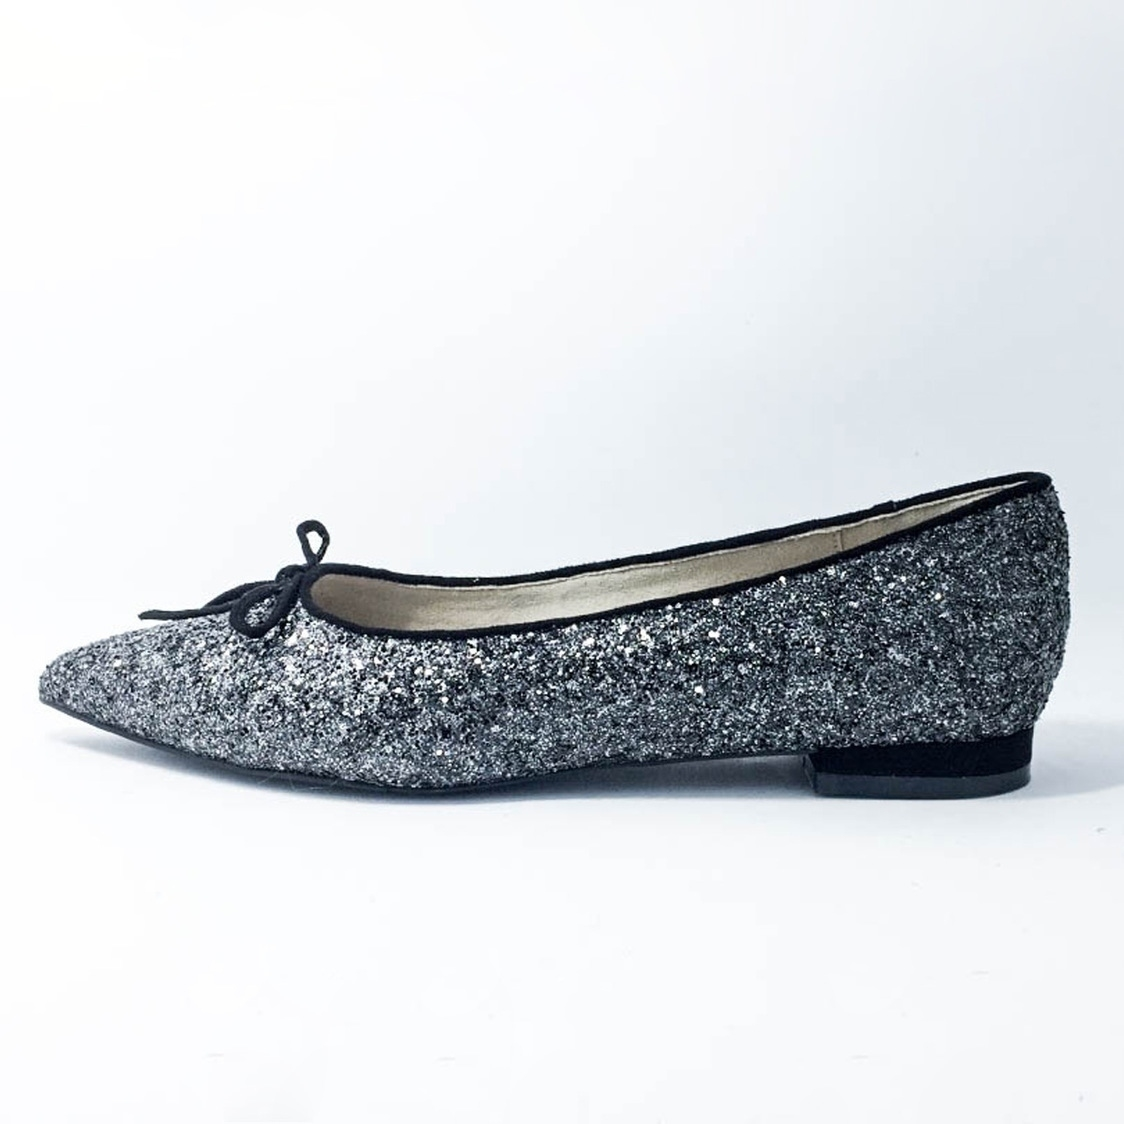 Glitter Pointed-Toe Flat Pump - Silver